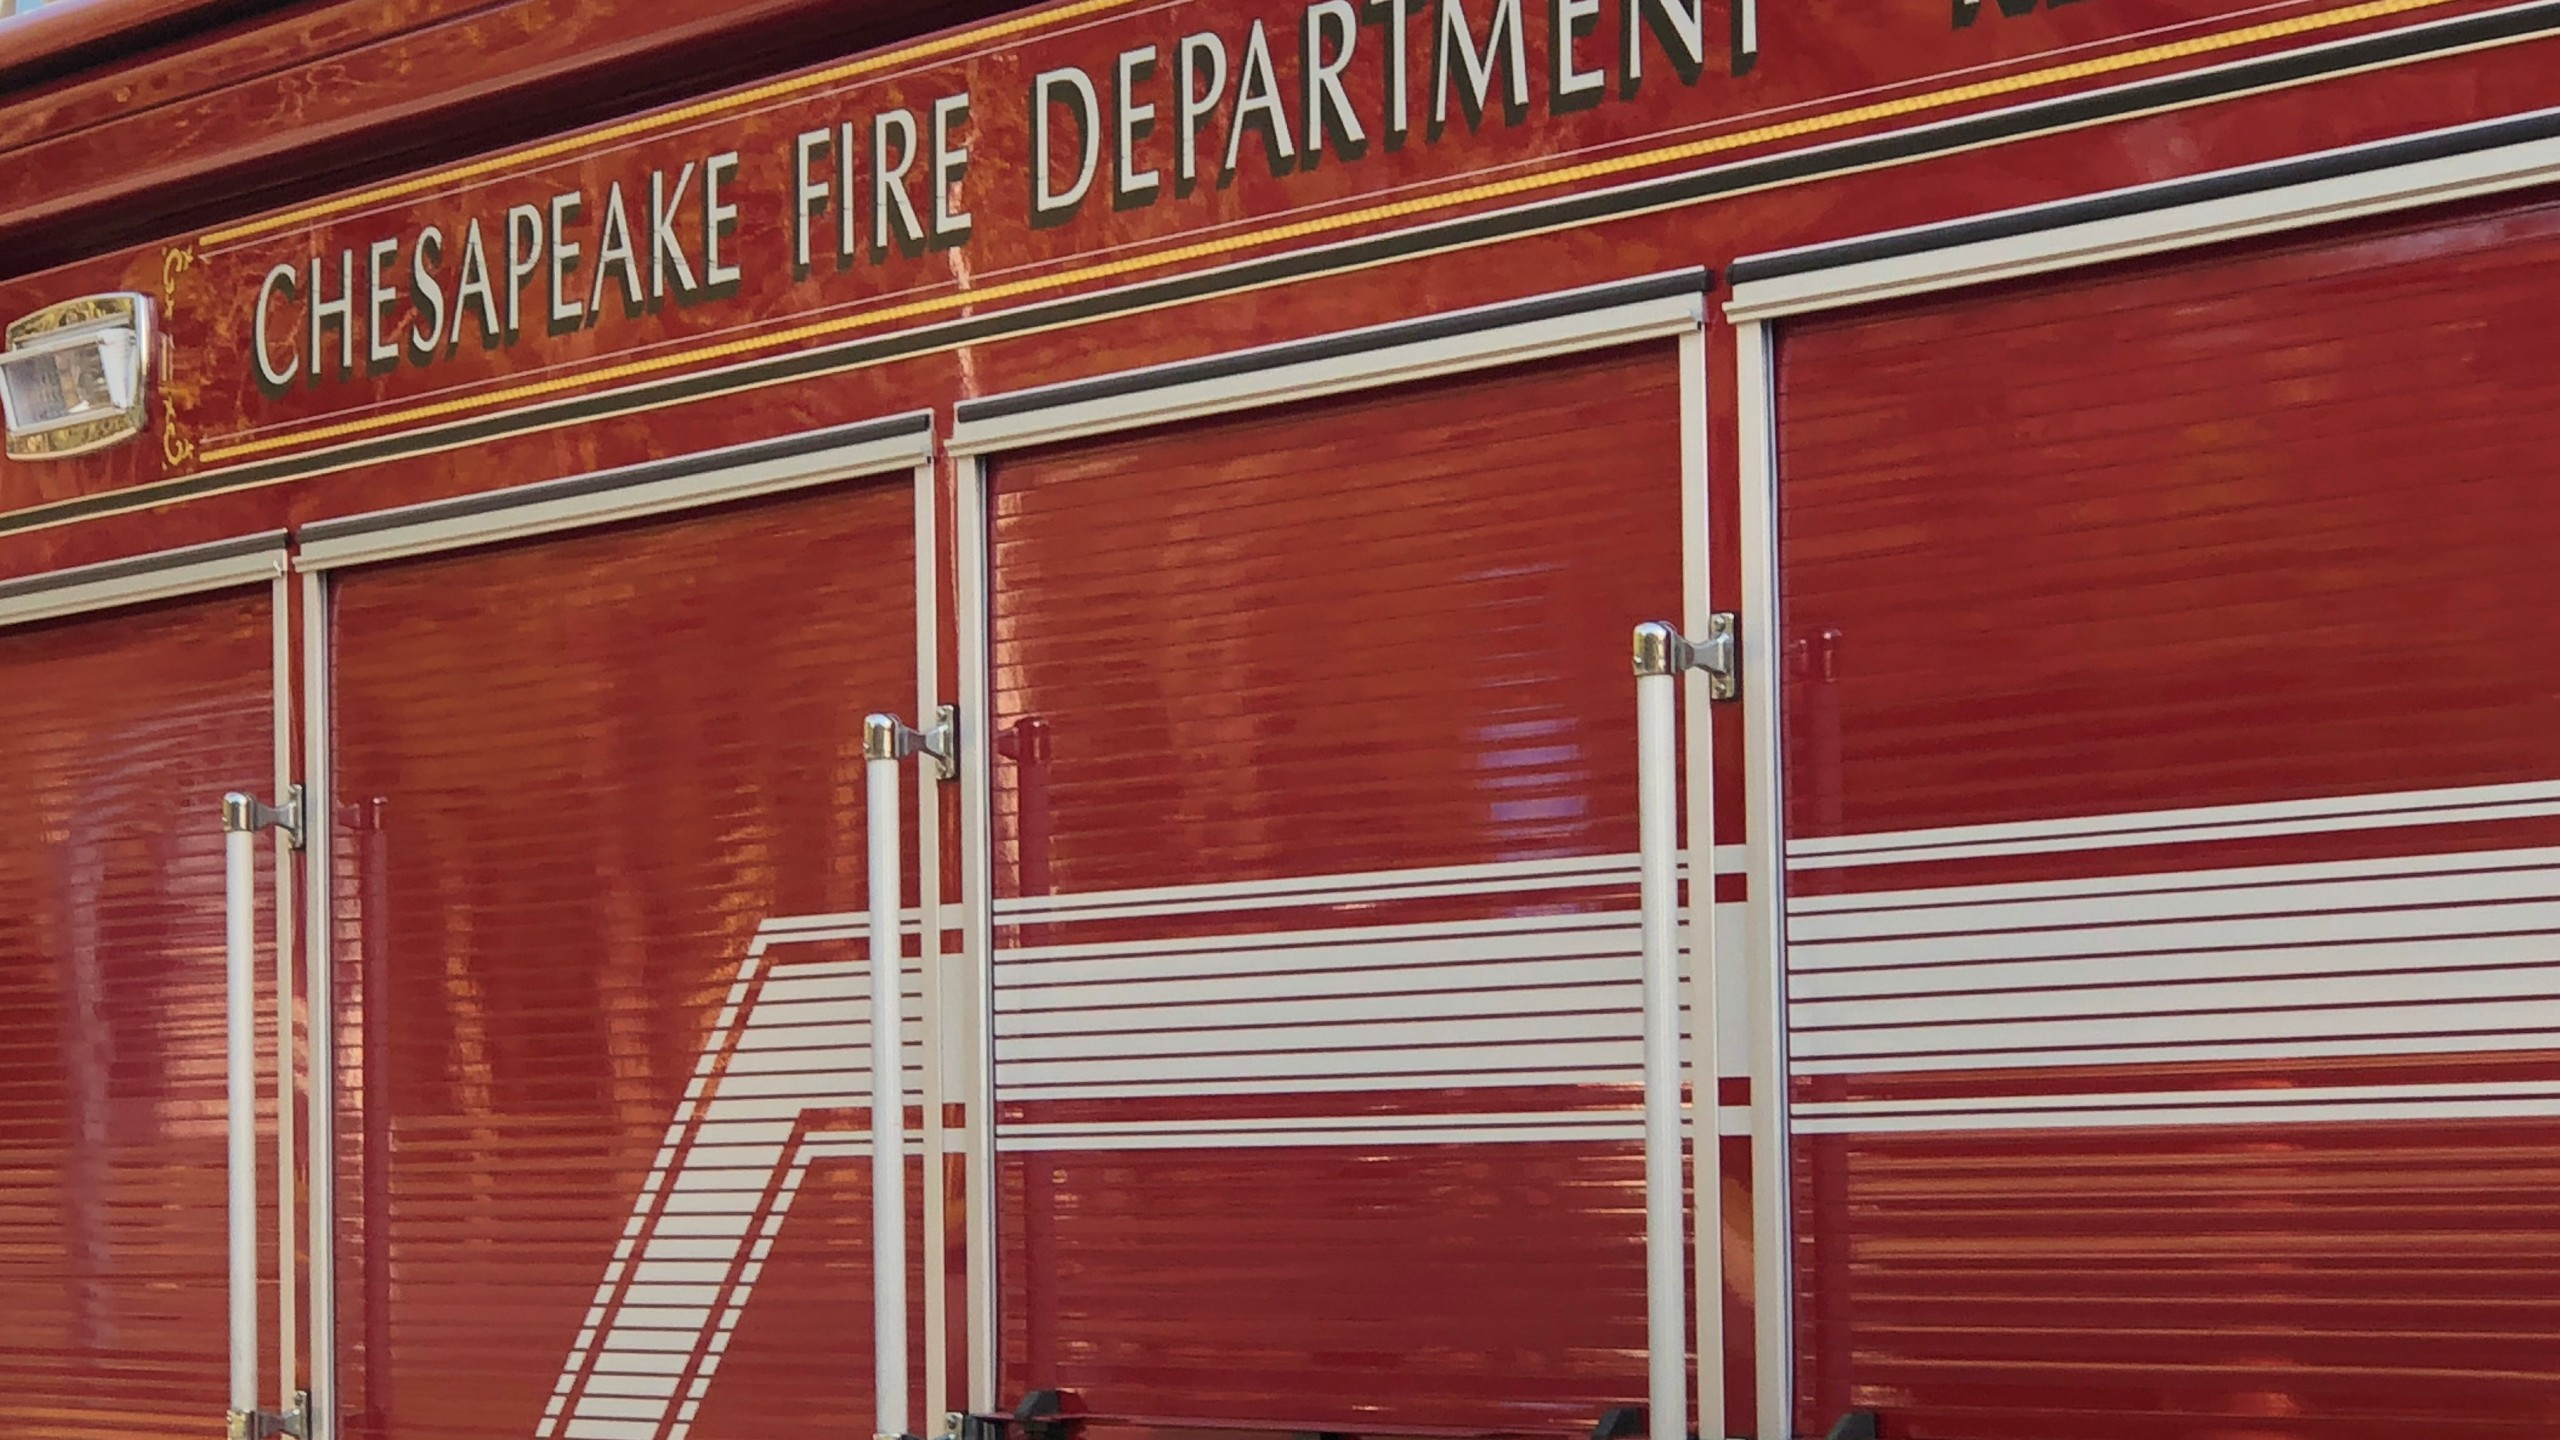 Chesapeake Fire and Rescue Generic_1524144647287.jpg.jpg